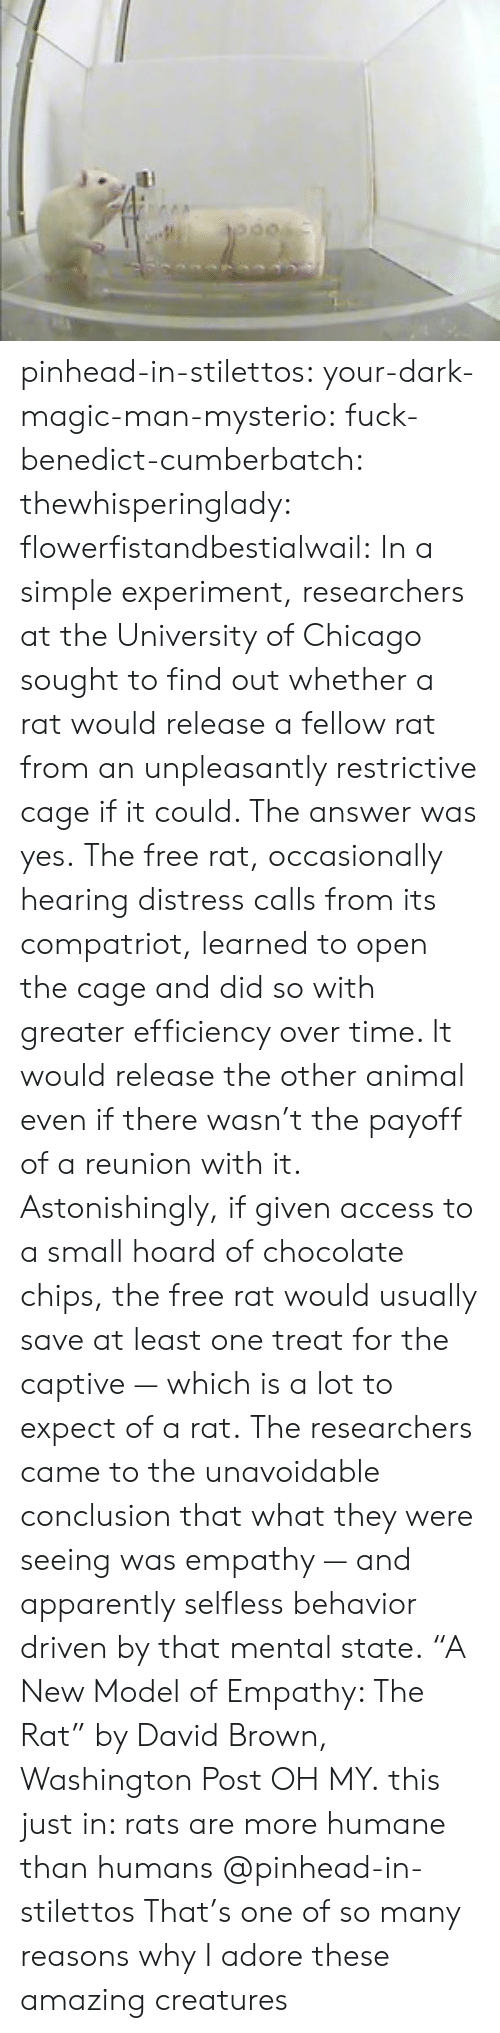 "Washington Post: pinhead-in-stilettos:  your-dark-magic-man-mysterio:  fuck-benedict-cumberbatch:   thewhisperinglady:  flowerfistandbestialwail:   In a simple experiment, researchers at the University of Chicago sought to find out whether a rat would release a fellow rat from an unpleasantly restrictive cage if it could. The answer was yes. The free rat, occasionally hearing distress calls from its compatriot, learned to open the cage and did so with greater efficiency over time. It would release the other animal even if there wasn't the payoff of a reunion with it. Astonishingly, if given access to a small hoard of chocolate chips, the free rat would usually save at least one treat for the captive — which is a lot to expect of a rat. The researchers came to the unavoidable conclusion that what they were seeing was empathy — and apparently selfless behavior driven by that mental state. ""A New Model of Empathy: The Rat"" by David Brown, Washington Post   OH MY.  this just in: rats are more humane than humans   @pinhead-in-stilettos  That's one of so many reasons why I adore these amazing creatures"